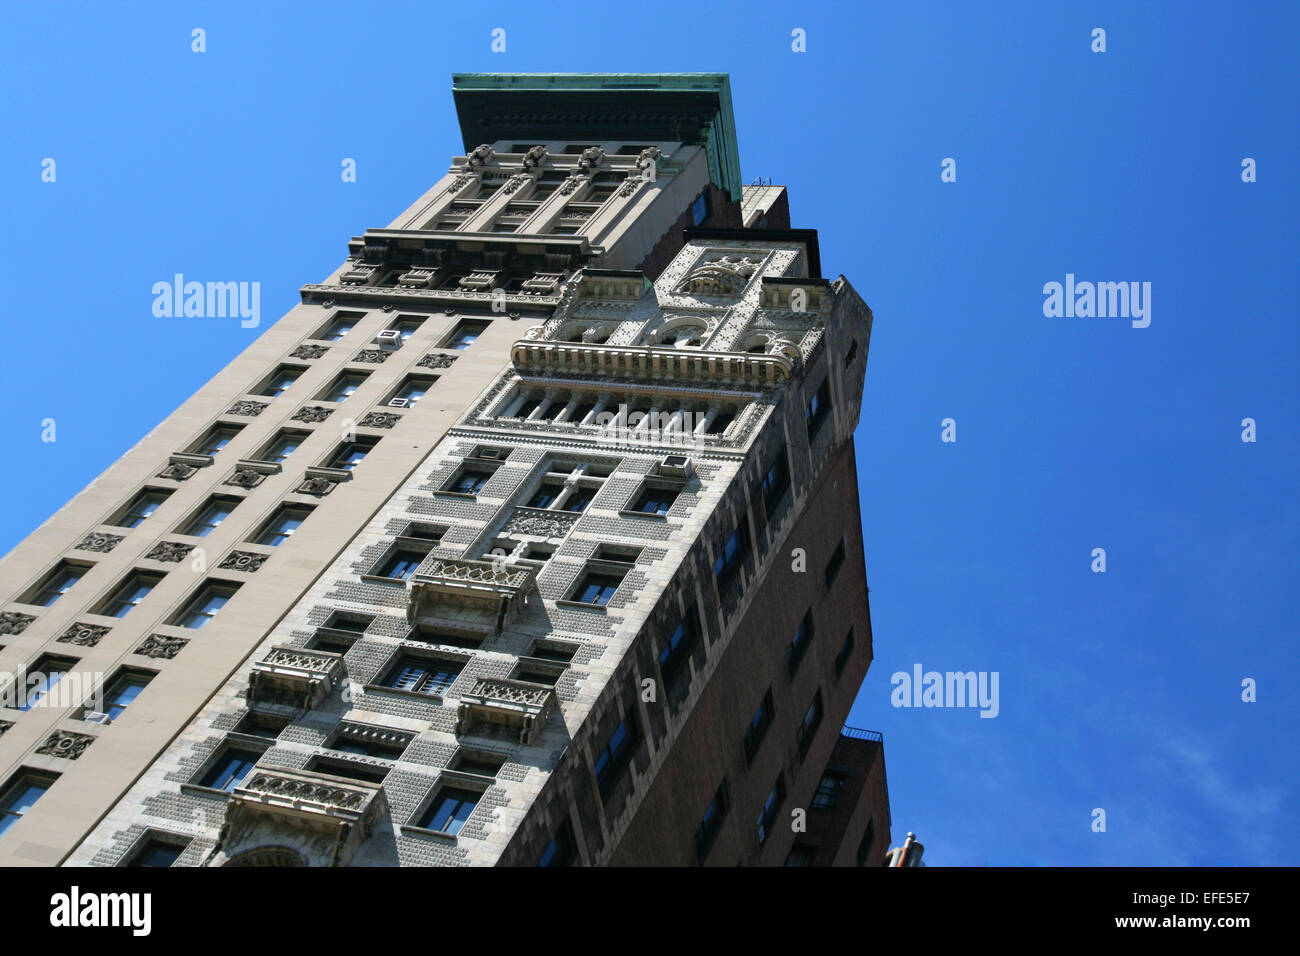 Haus in New York - Stock Image